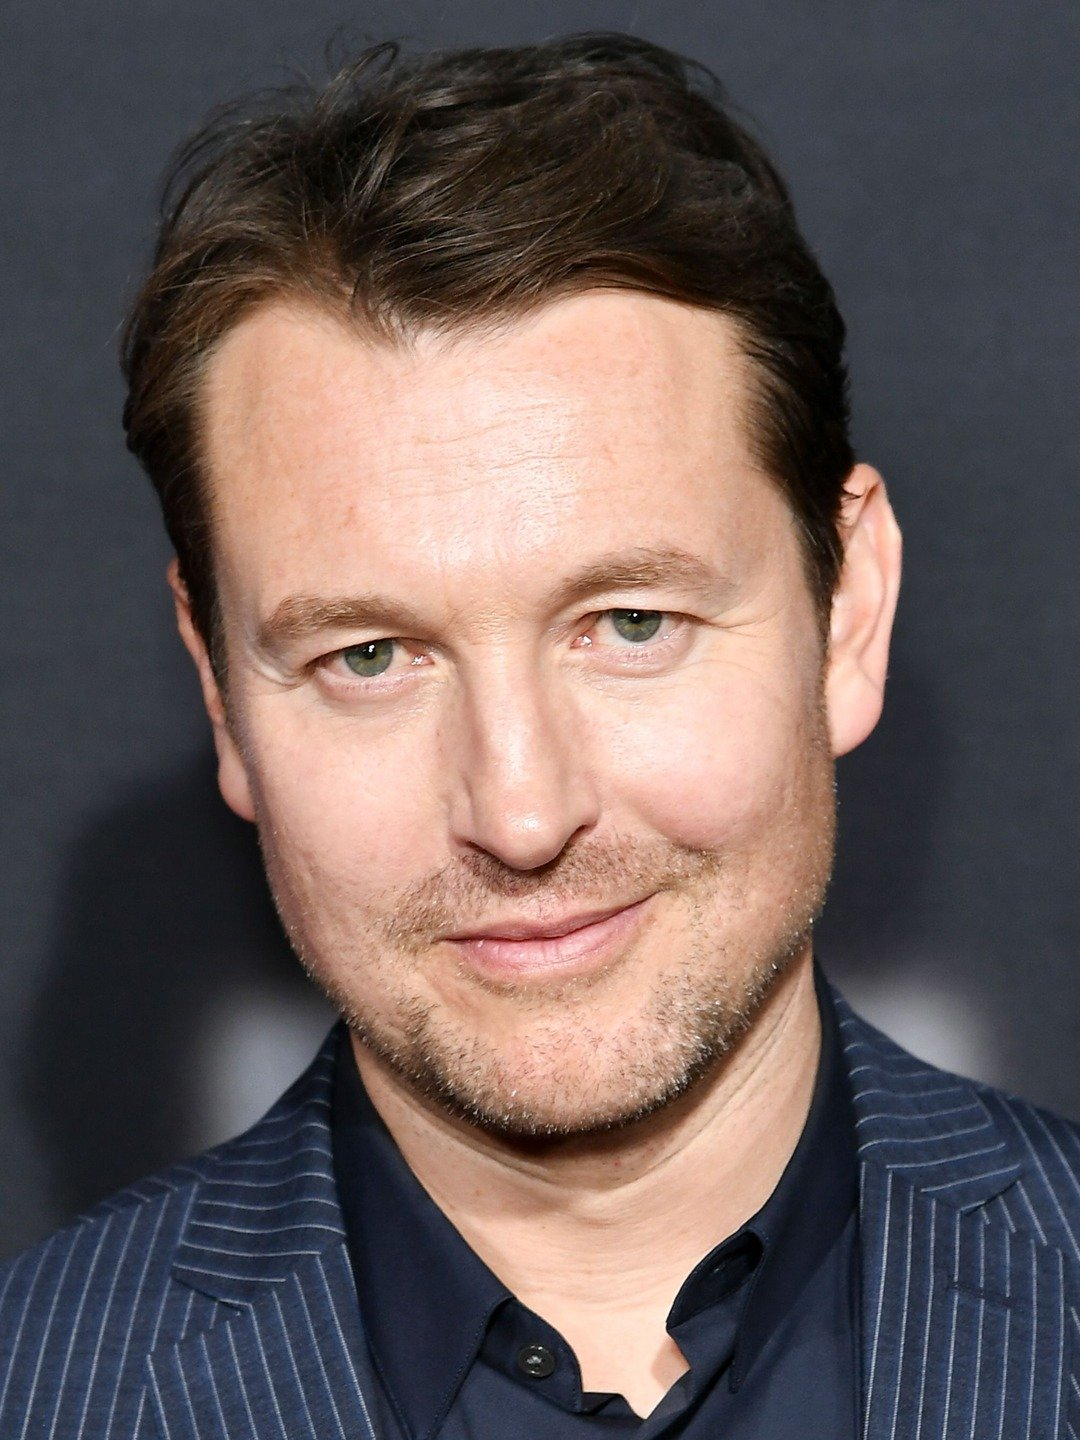 Leigh Whannell Australian Screenwriter, Actor, Producer, Director